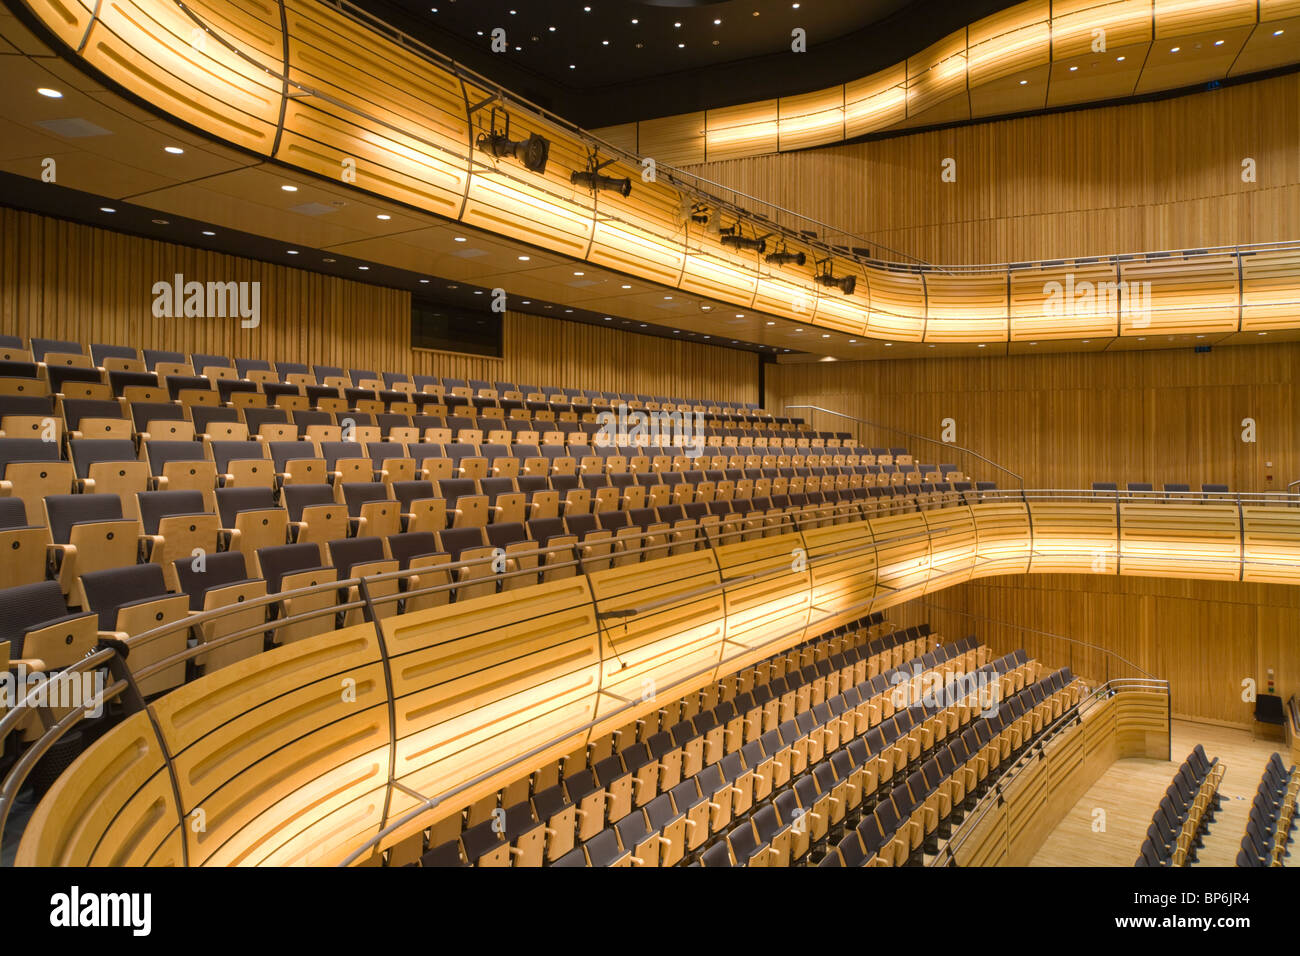 Hall One of the Sage Building Gateshead, designed by Sir Norman Foster - Stock Image